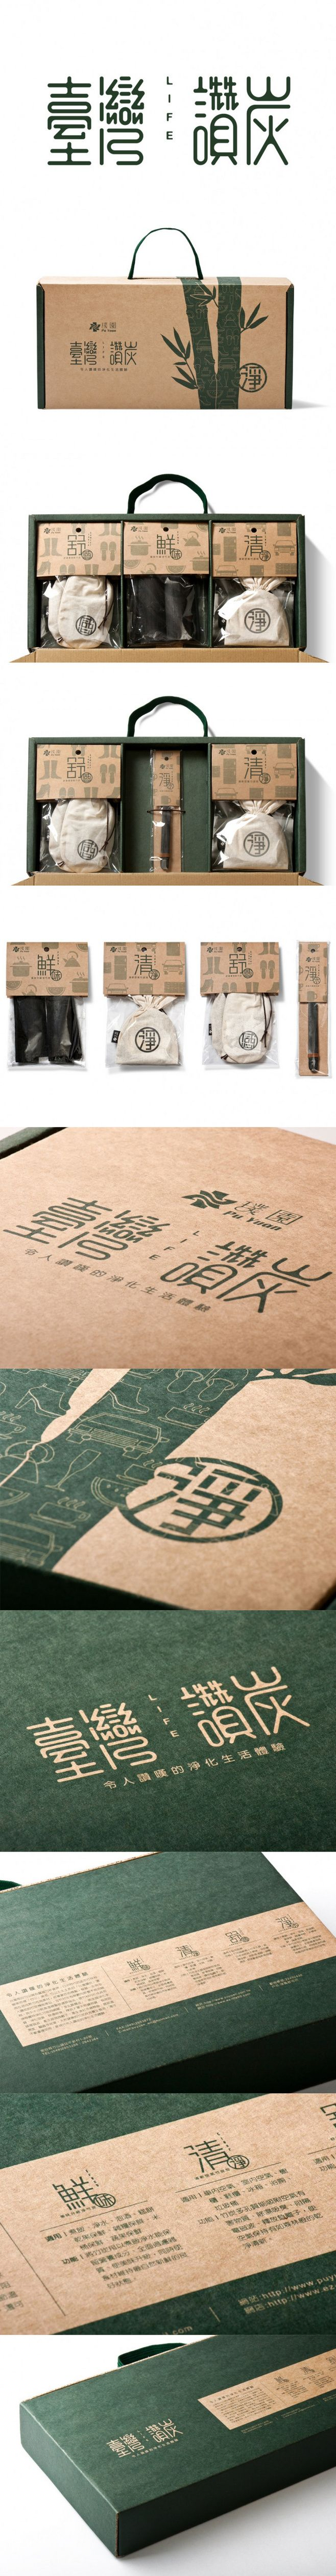 packaging / package design | (璞園 臺灣讚炭) Pu Yuan Art-Taiwan Fantastic Bamboo Charcoal products which purify water and air, eliminate dampness and absorb odor, release massive natural minerals, block electromagnetic waves effectively, generate strong negative ions.